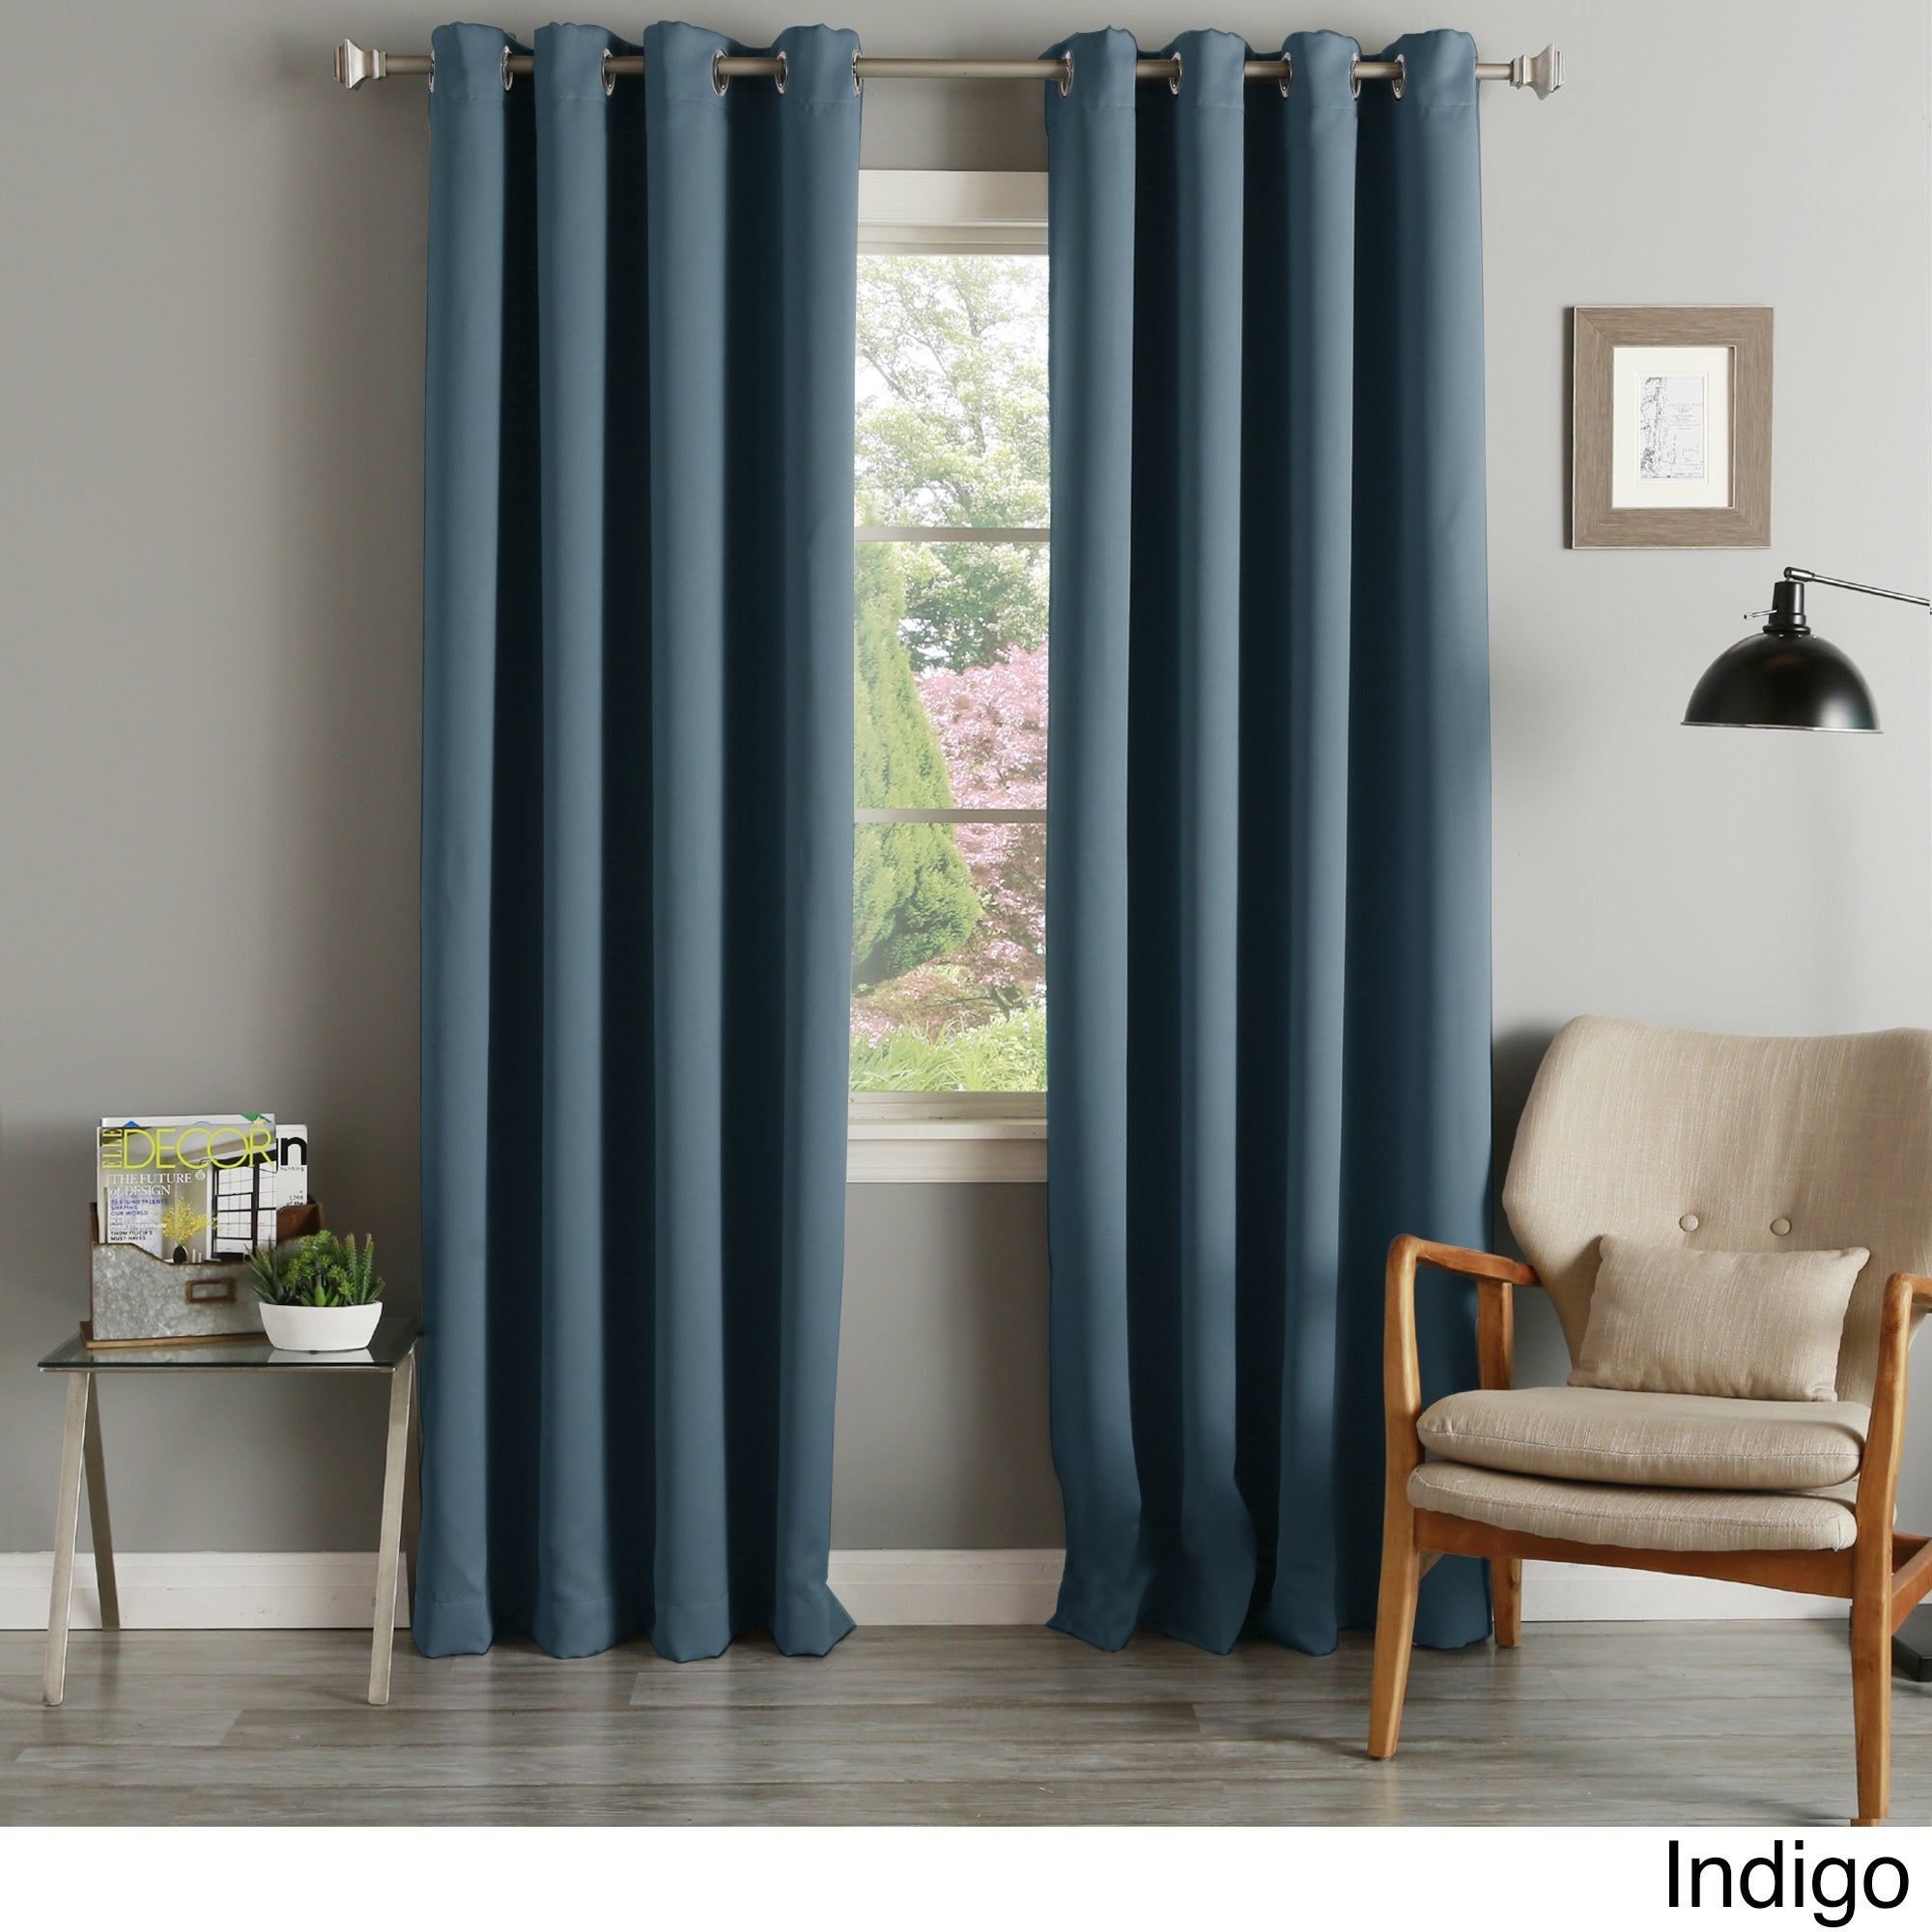 Aurora Home Silvertone Grommet Thermal Insulated Blackout Curtain Panel Pair Intended For Thermal Insulated Blackout Curtain Panel Pairs (View 4 of 30)